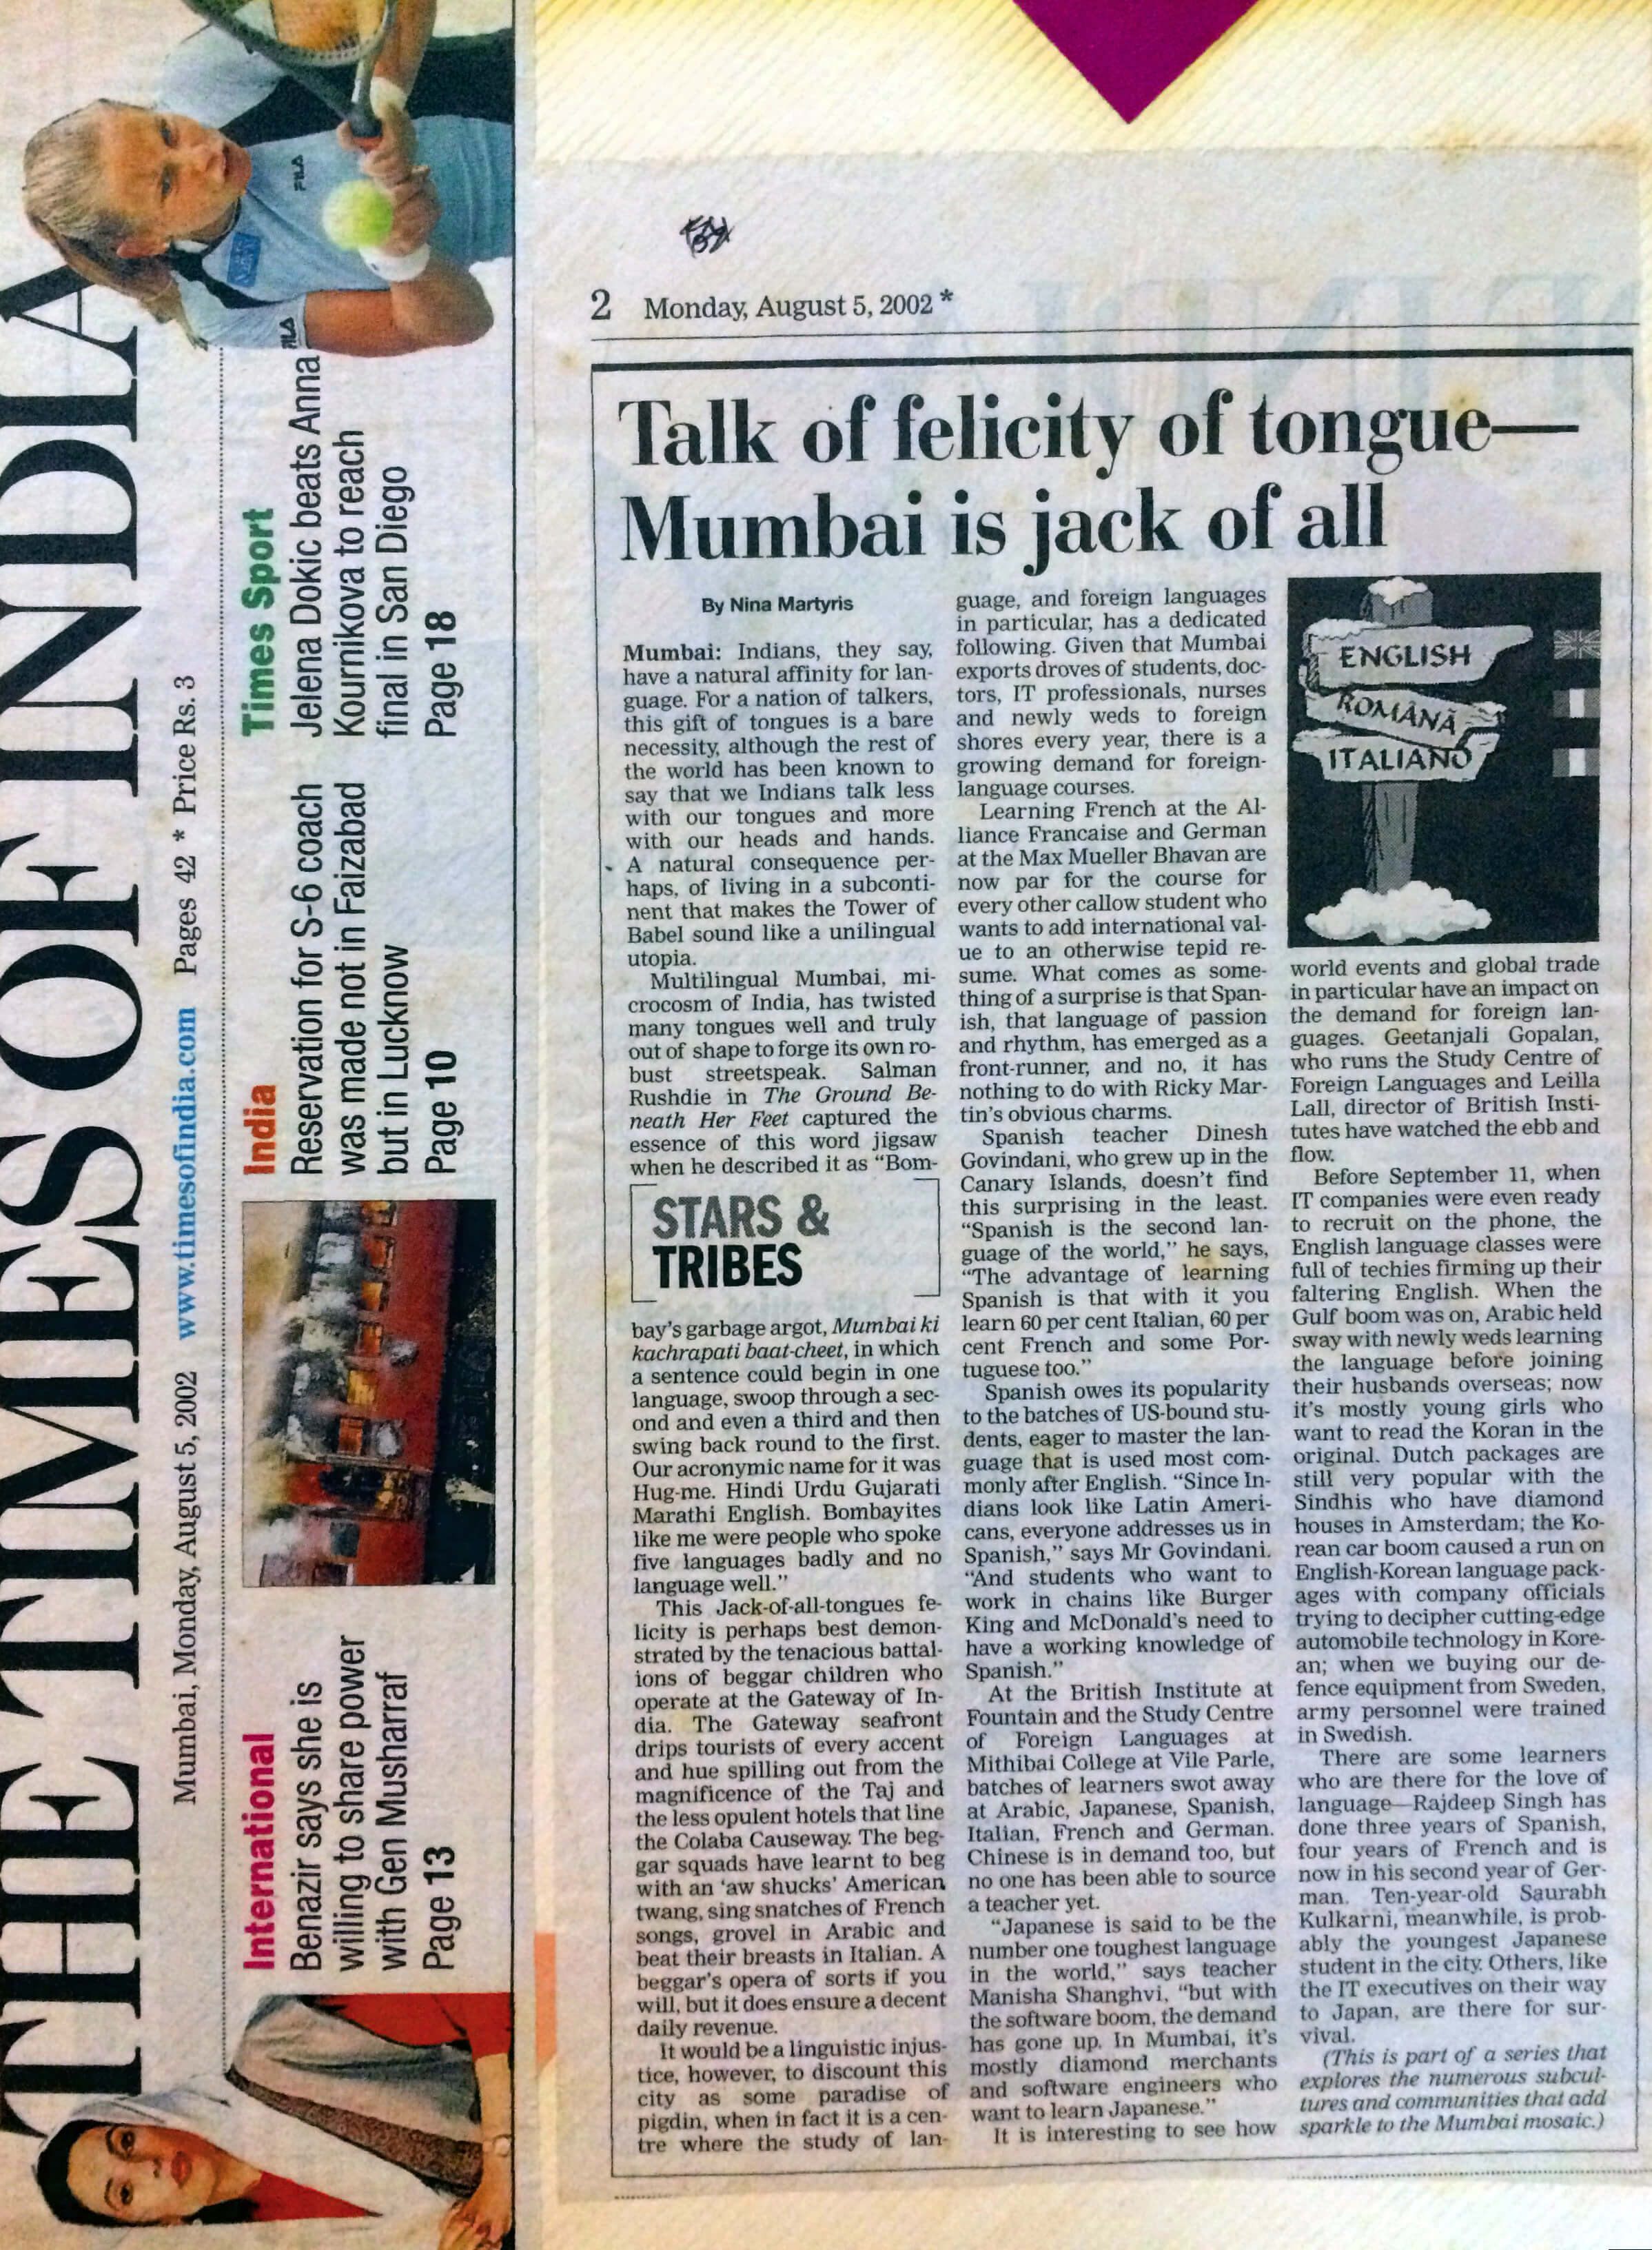 Times of India - Talk of felicity of tongue, Mumbai is jack of all